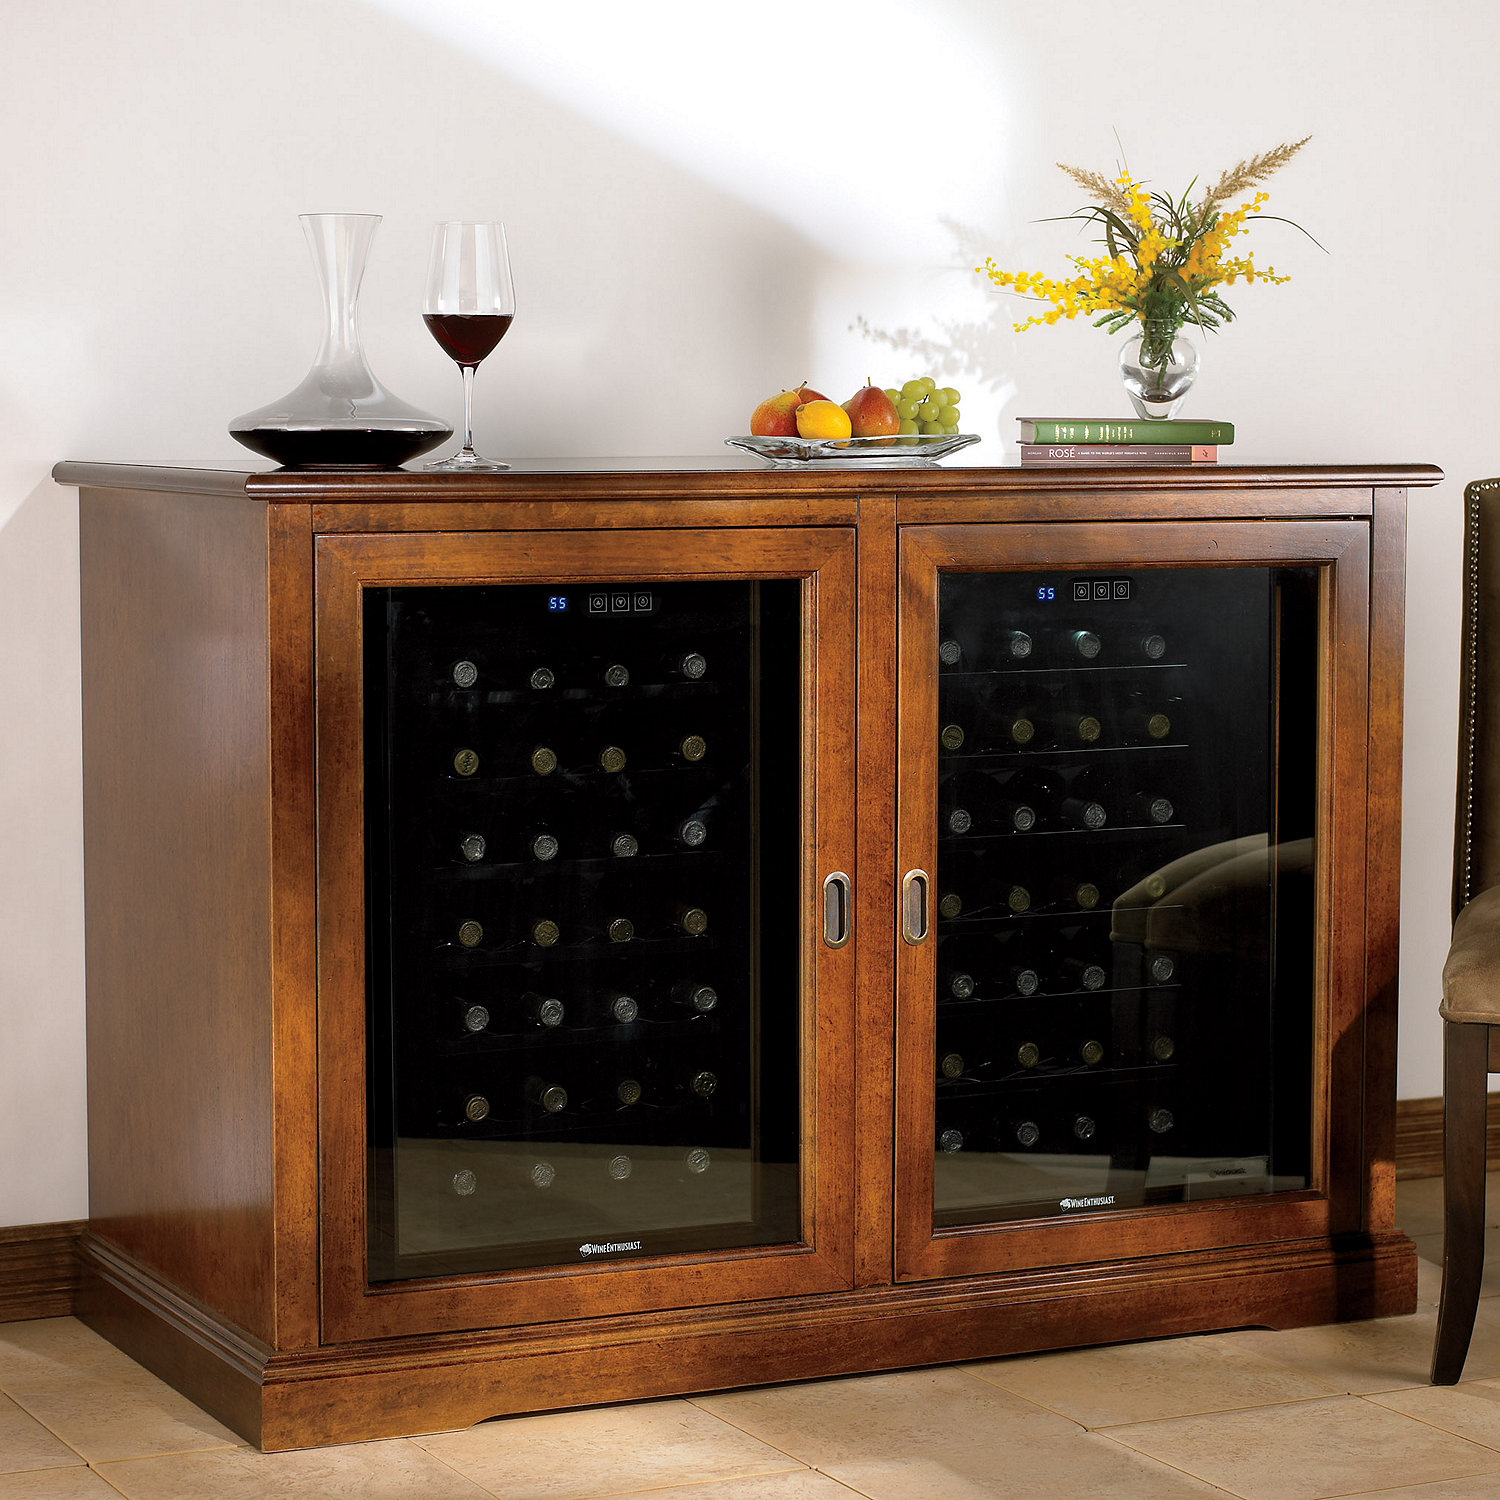 Siena Mezzo Wine Credenza Walnut With Two Refrigerators Enthusiast